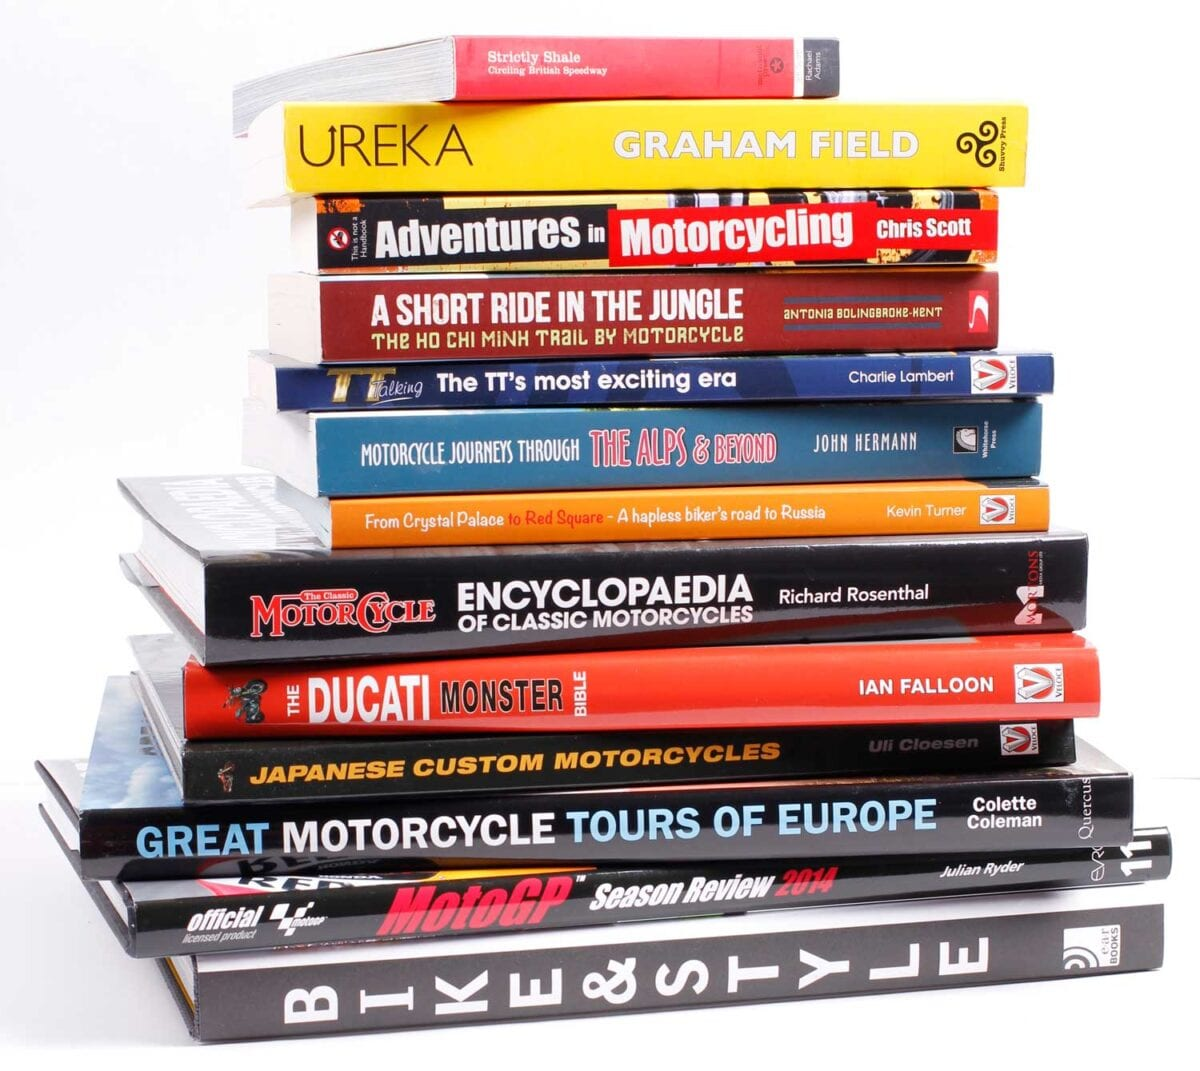 Motorcycle-Christmas-Books-001